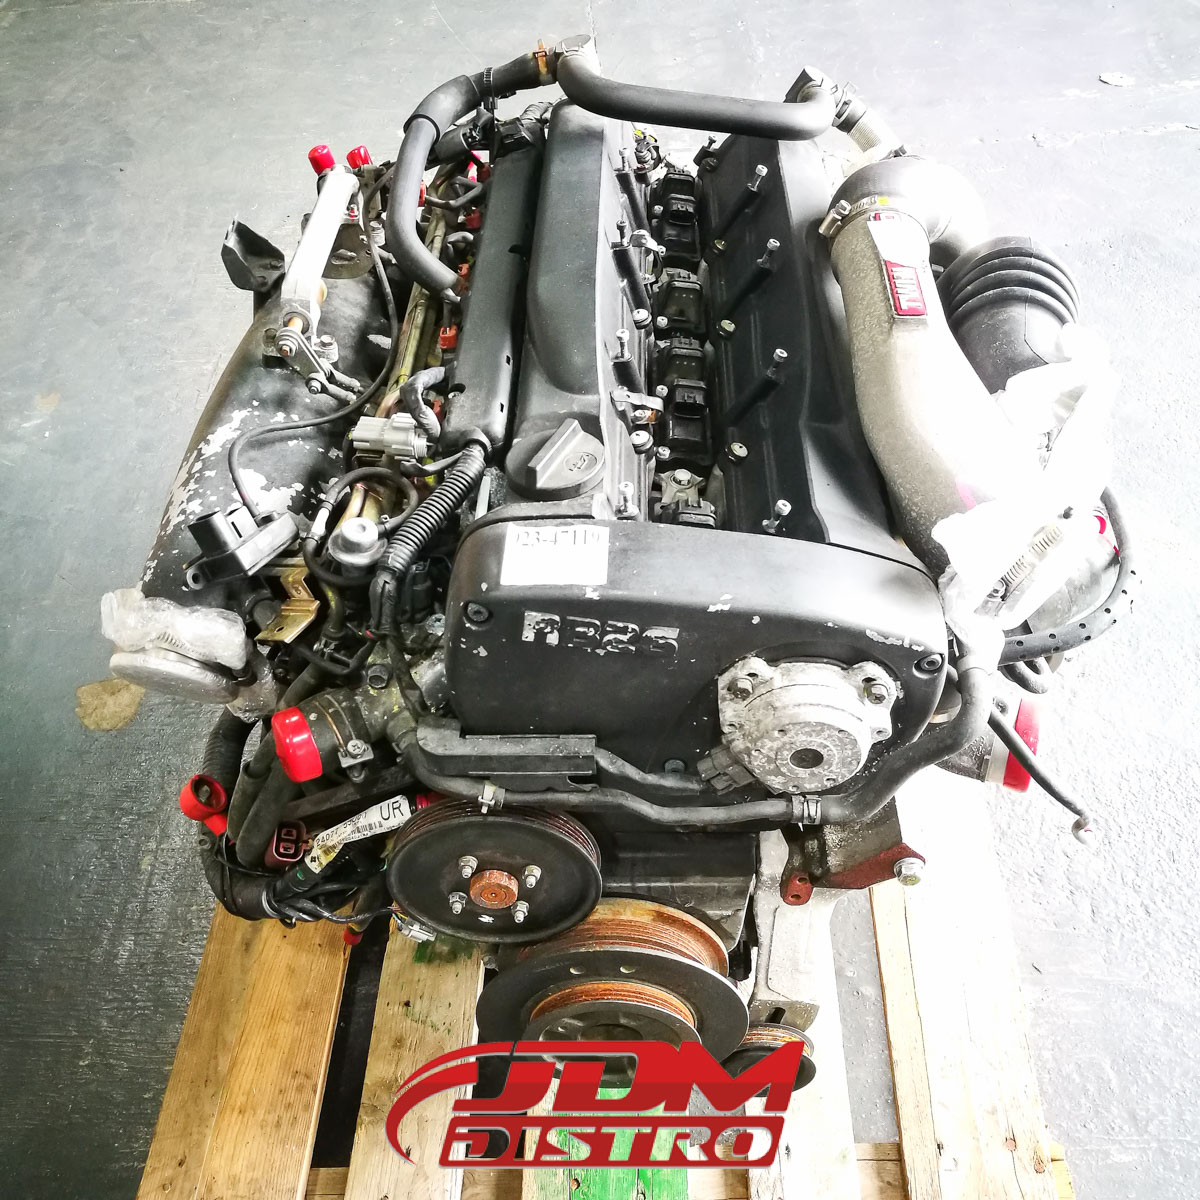 R33 Rb26dett Engine For Sale In The Uk Green Communities Canada Wiring Harness